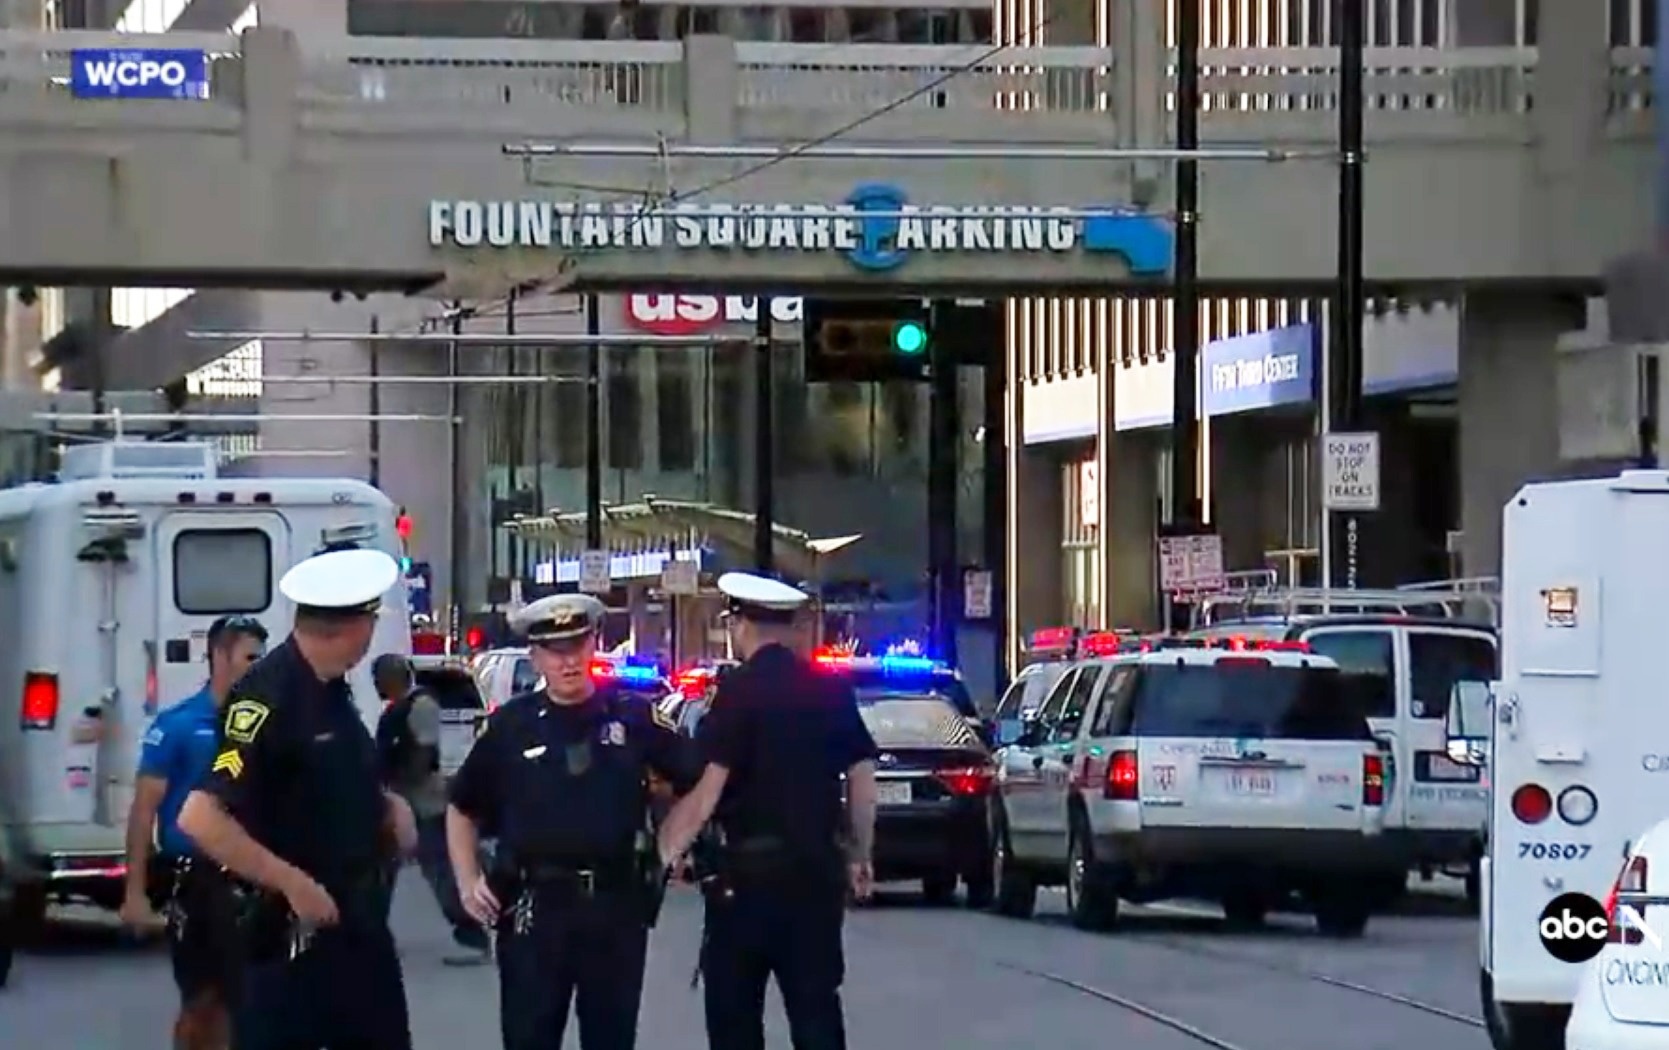 """""""Brokenness is pervasive,"""" said Cincinnati church planter Jason McKinney after the city saw four people killed and two others wounded in a mass shooting. Screen capture from ABC News"""